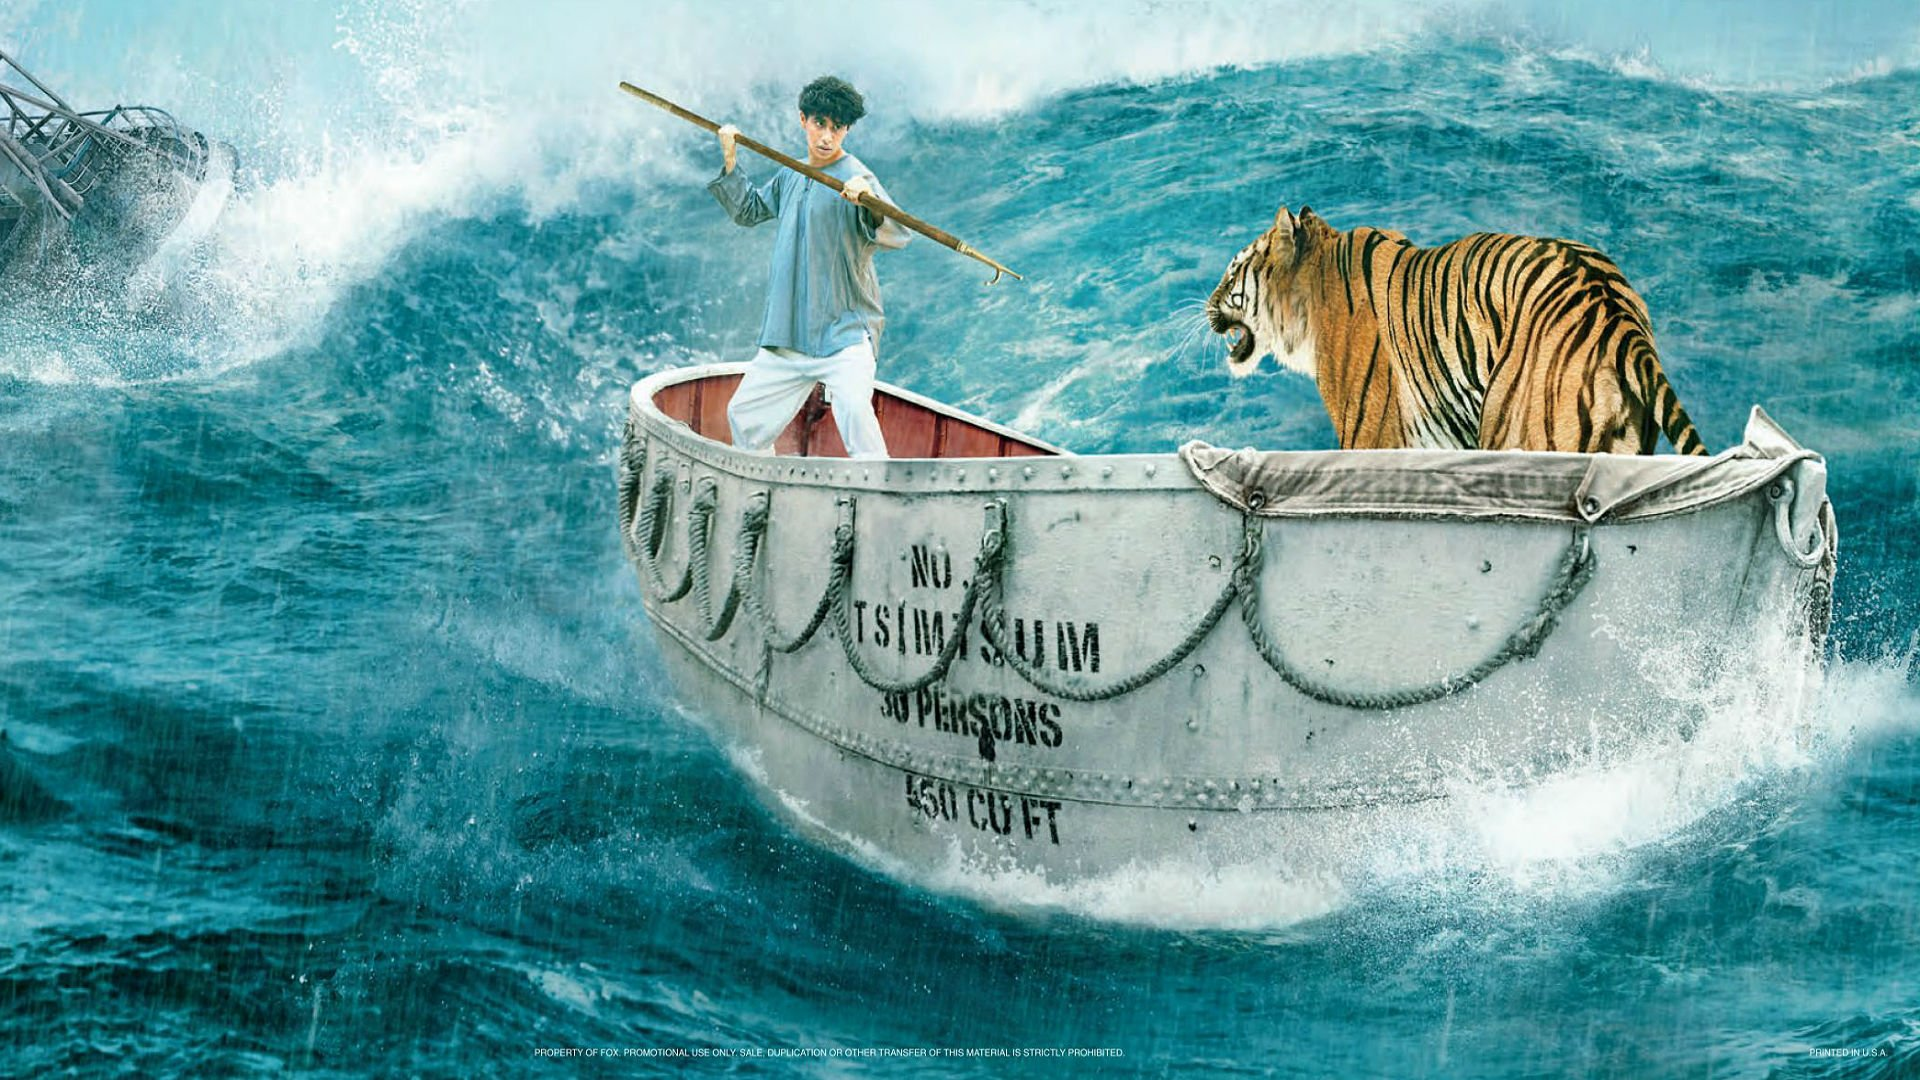 life of pi ocean exclusive life of pi behind the scenes photos  life of pi family adventure drama fantasy tiger d animation life of pi family adventure drama